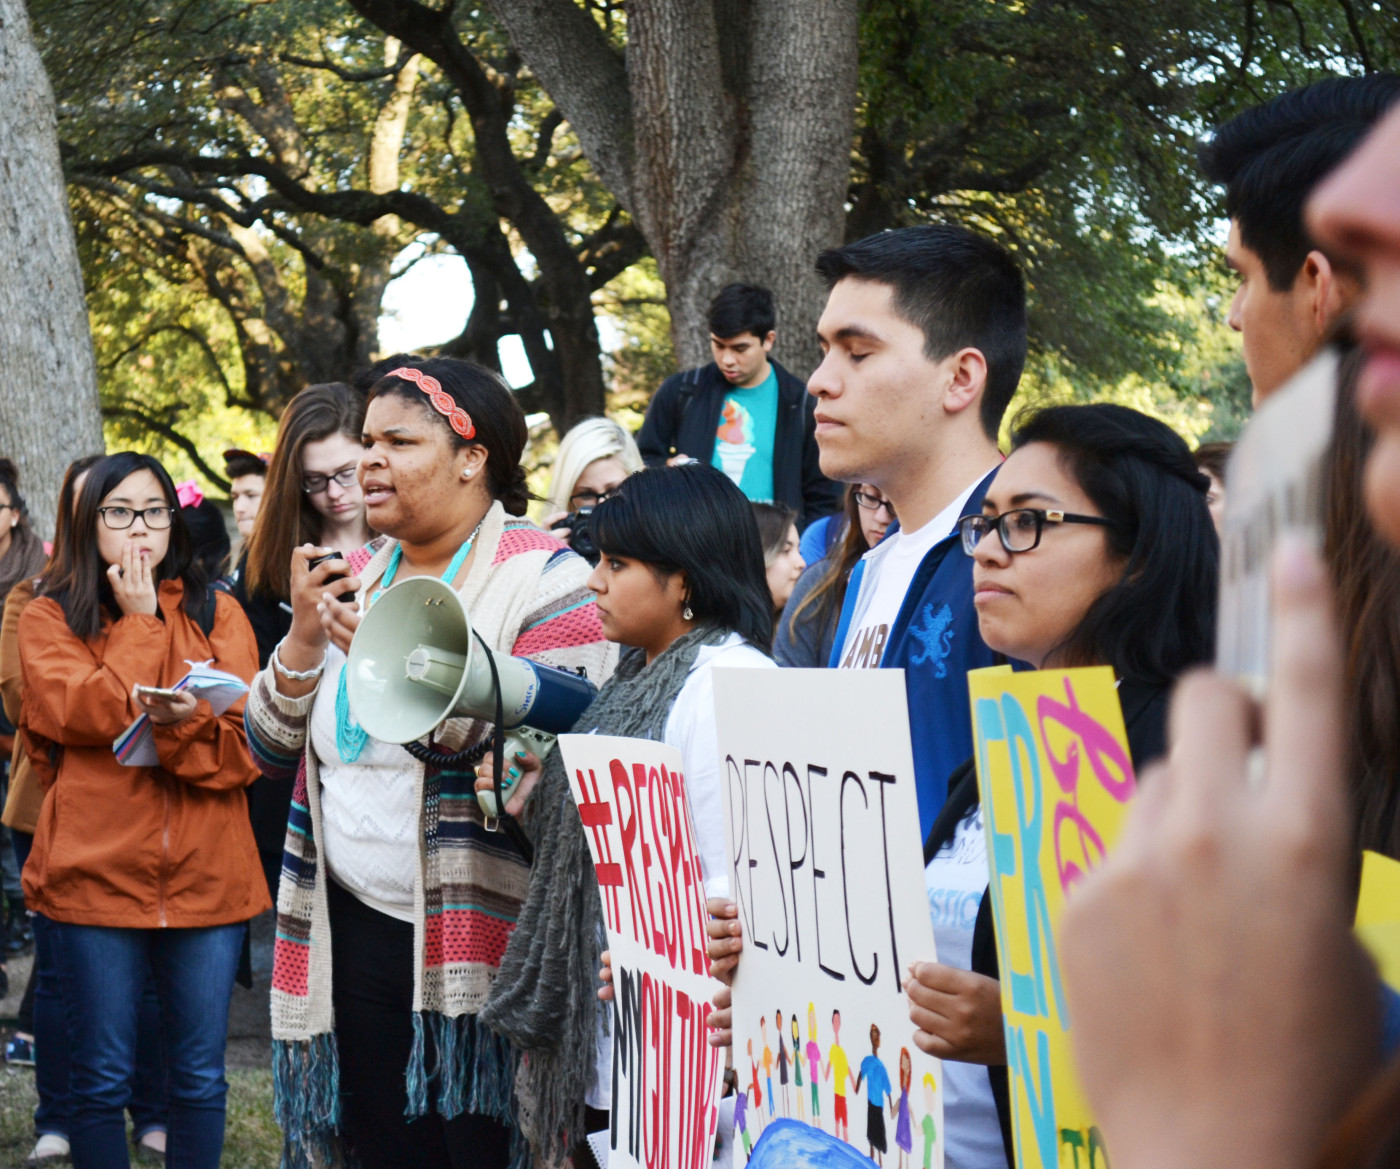 Amber Magee, second year biology, leads the rally before the United Against Racism March on February 12, 2015 in Austin, Texas. Magee is a LEAP mentor with the Leadership and Ethics Institute and discussed why culture should not serve as an attraction feature for parties as students mainly go to Snapchat and hangout.